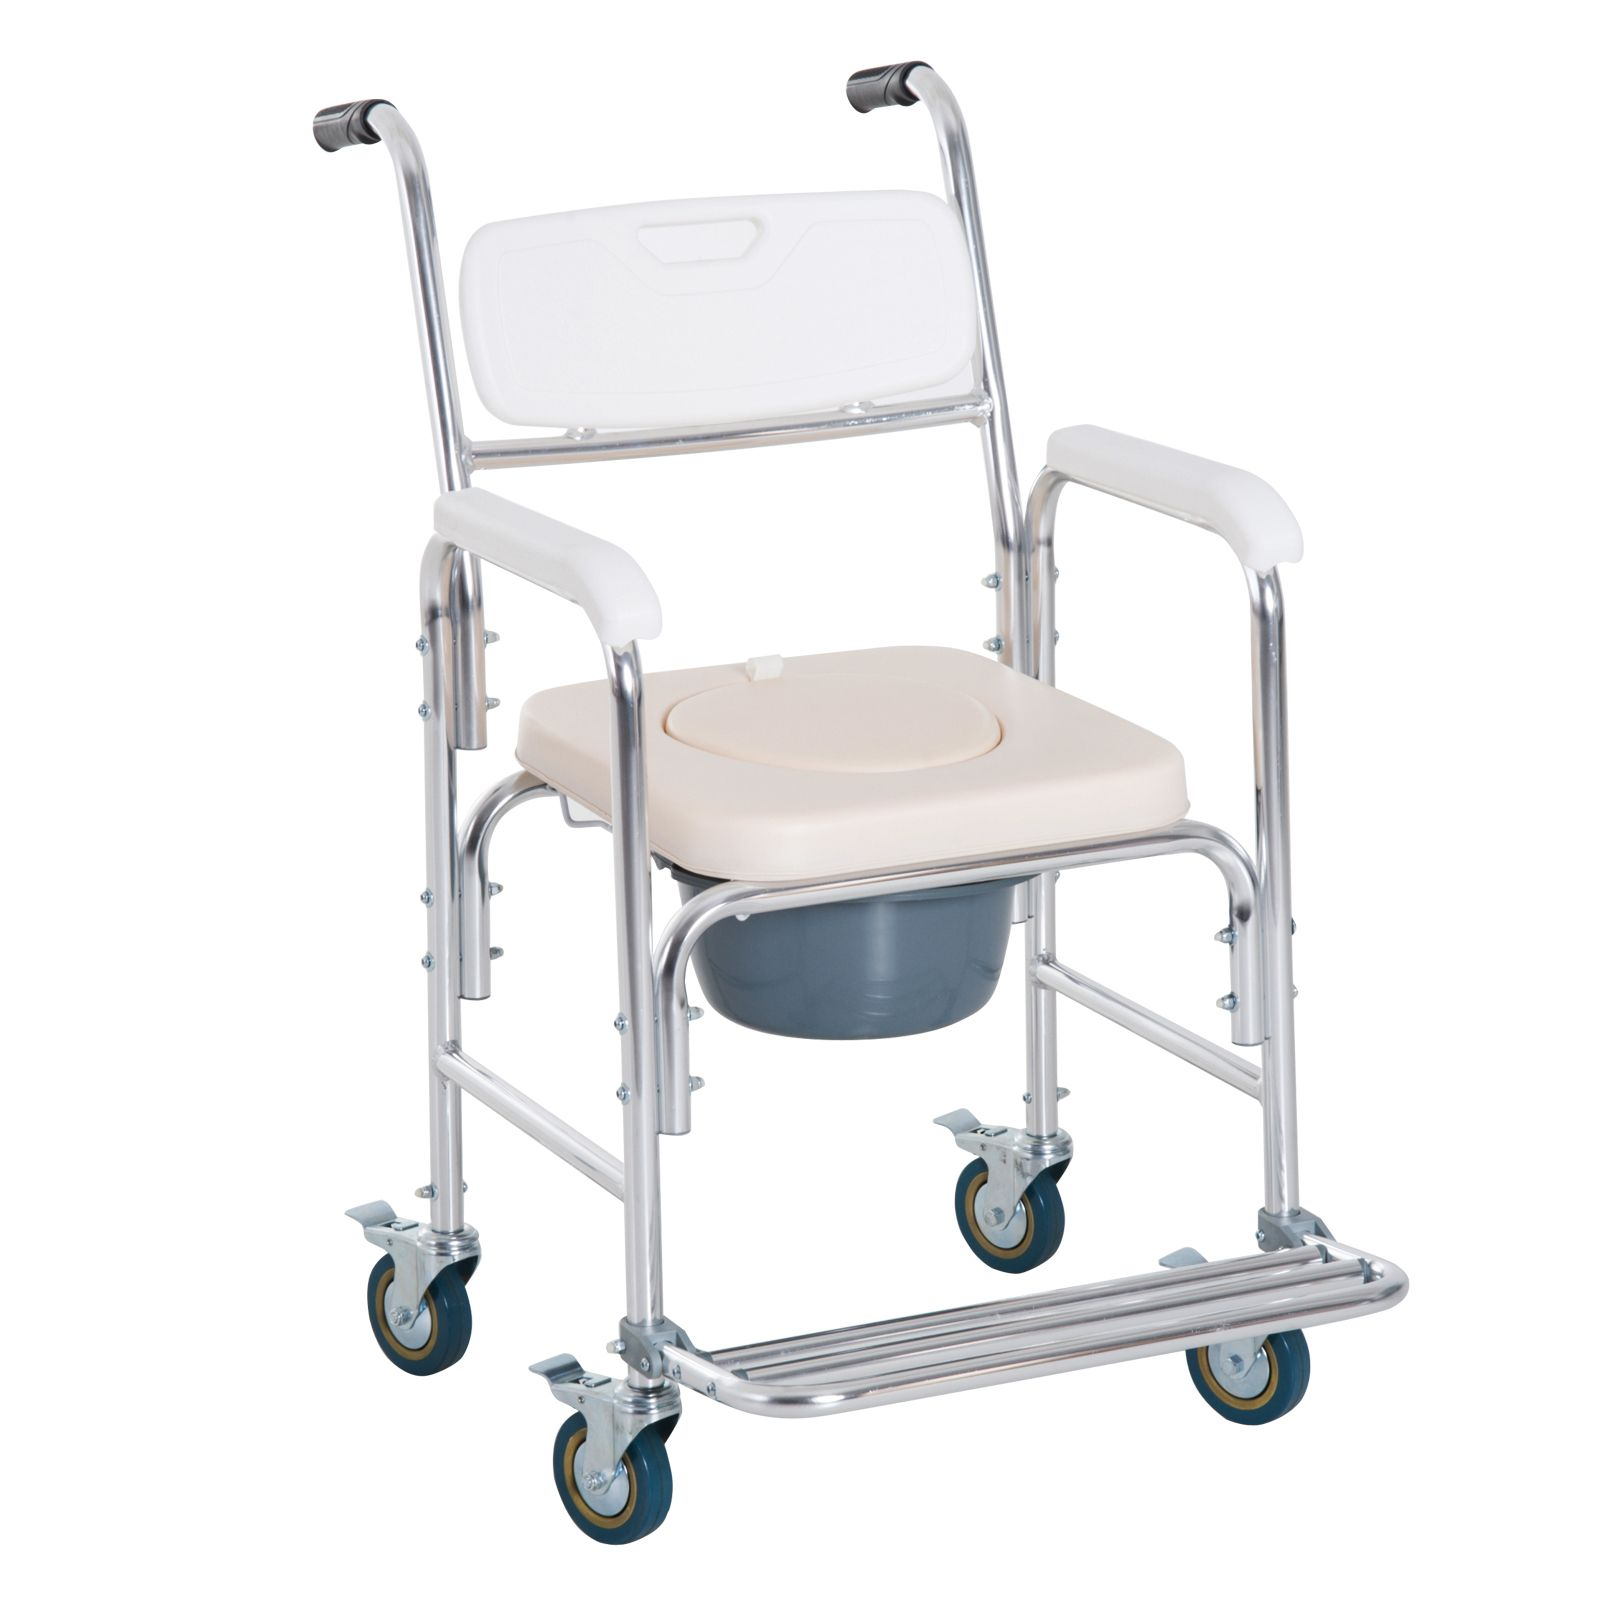 Homcom Personal Mobility Assist Waterproof Commode Shower Transport Medical Rolling Chair Mobility Medical Rolling Chair Shower Chair Shower Commode Chair Rolling Chair